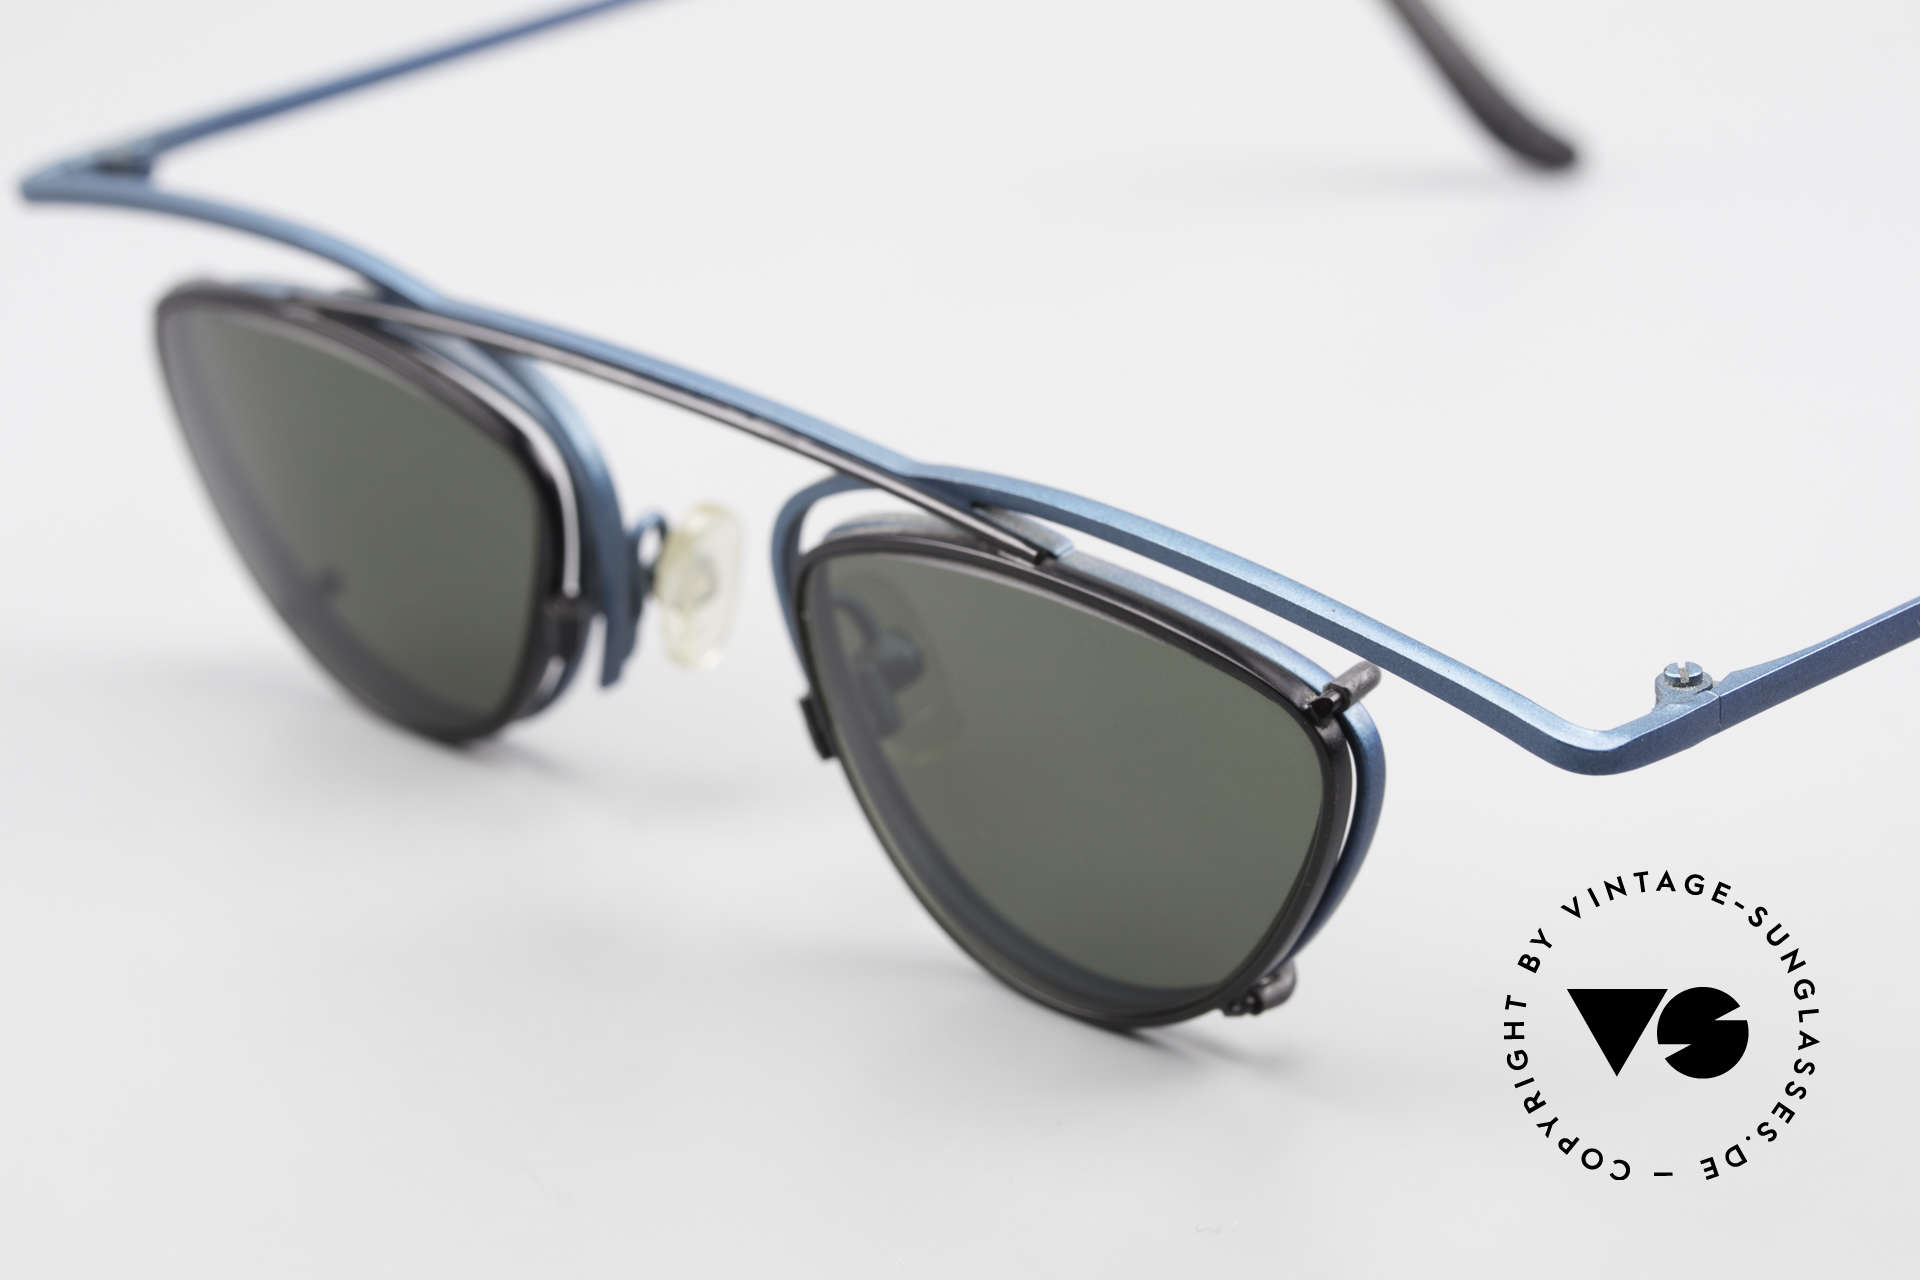 Theo Belgium Rhum Designer Glasses With Clip On, Theo creations are 'opposite pole' to the 'mainstream', Made for Men and Women